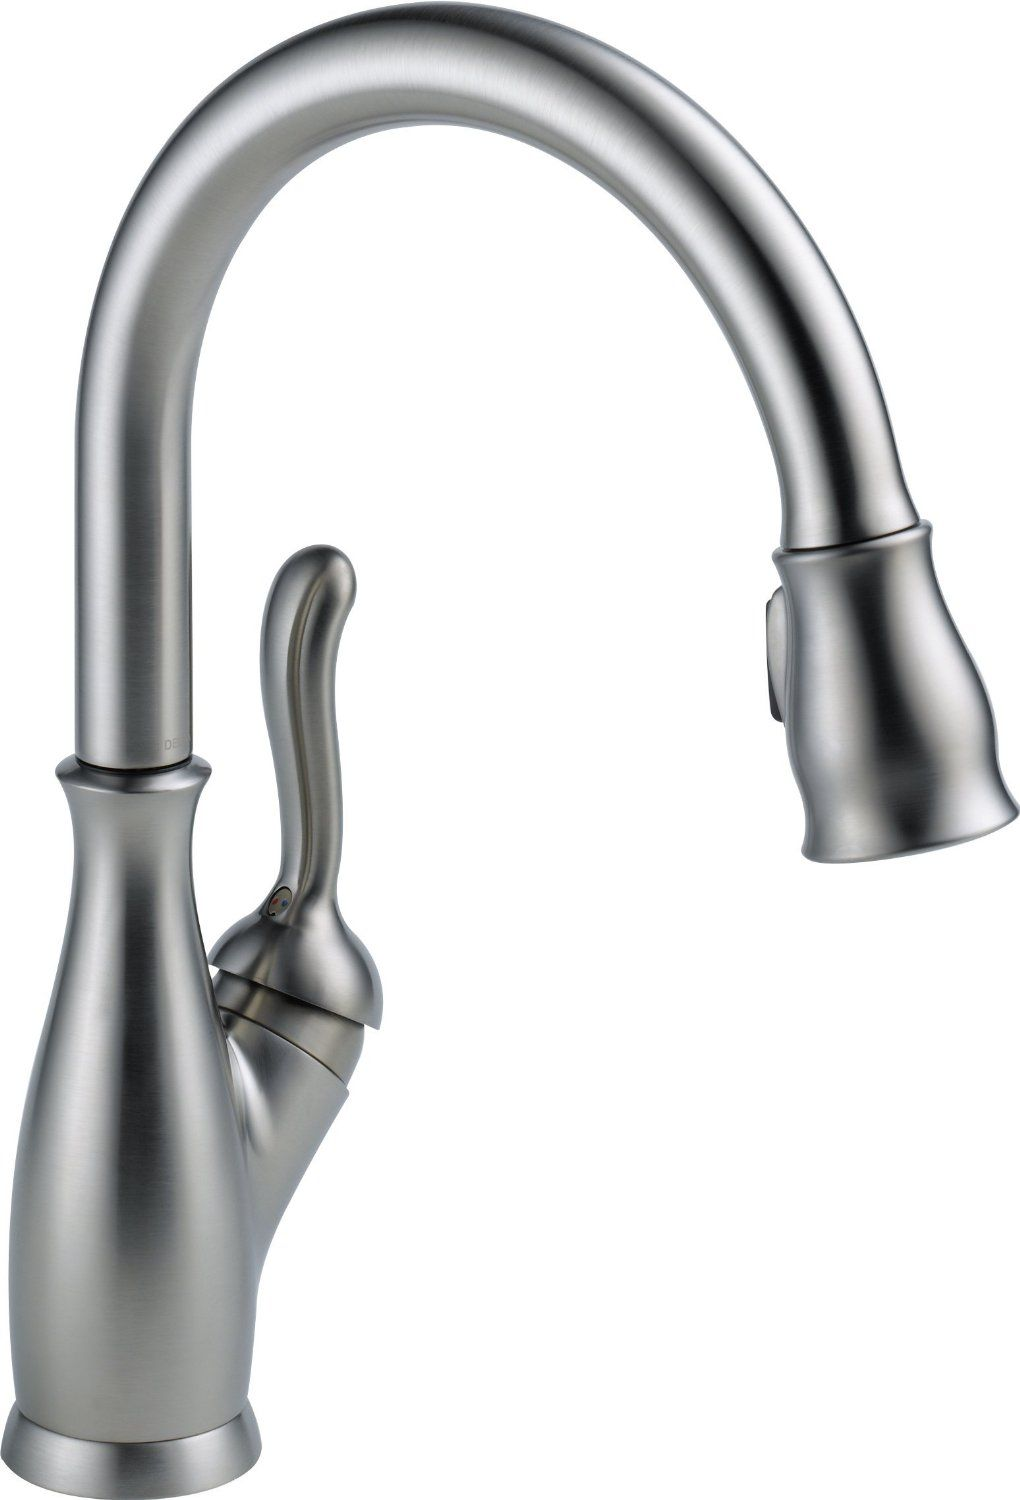 Recommended] Best Kitchen Faucets 2018 | Kitchen Room | Pinterest ...